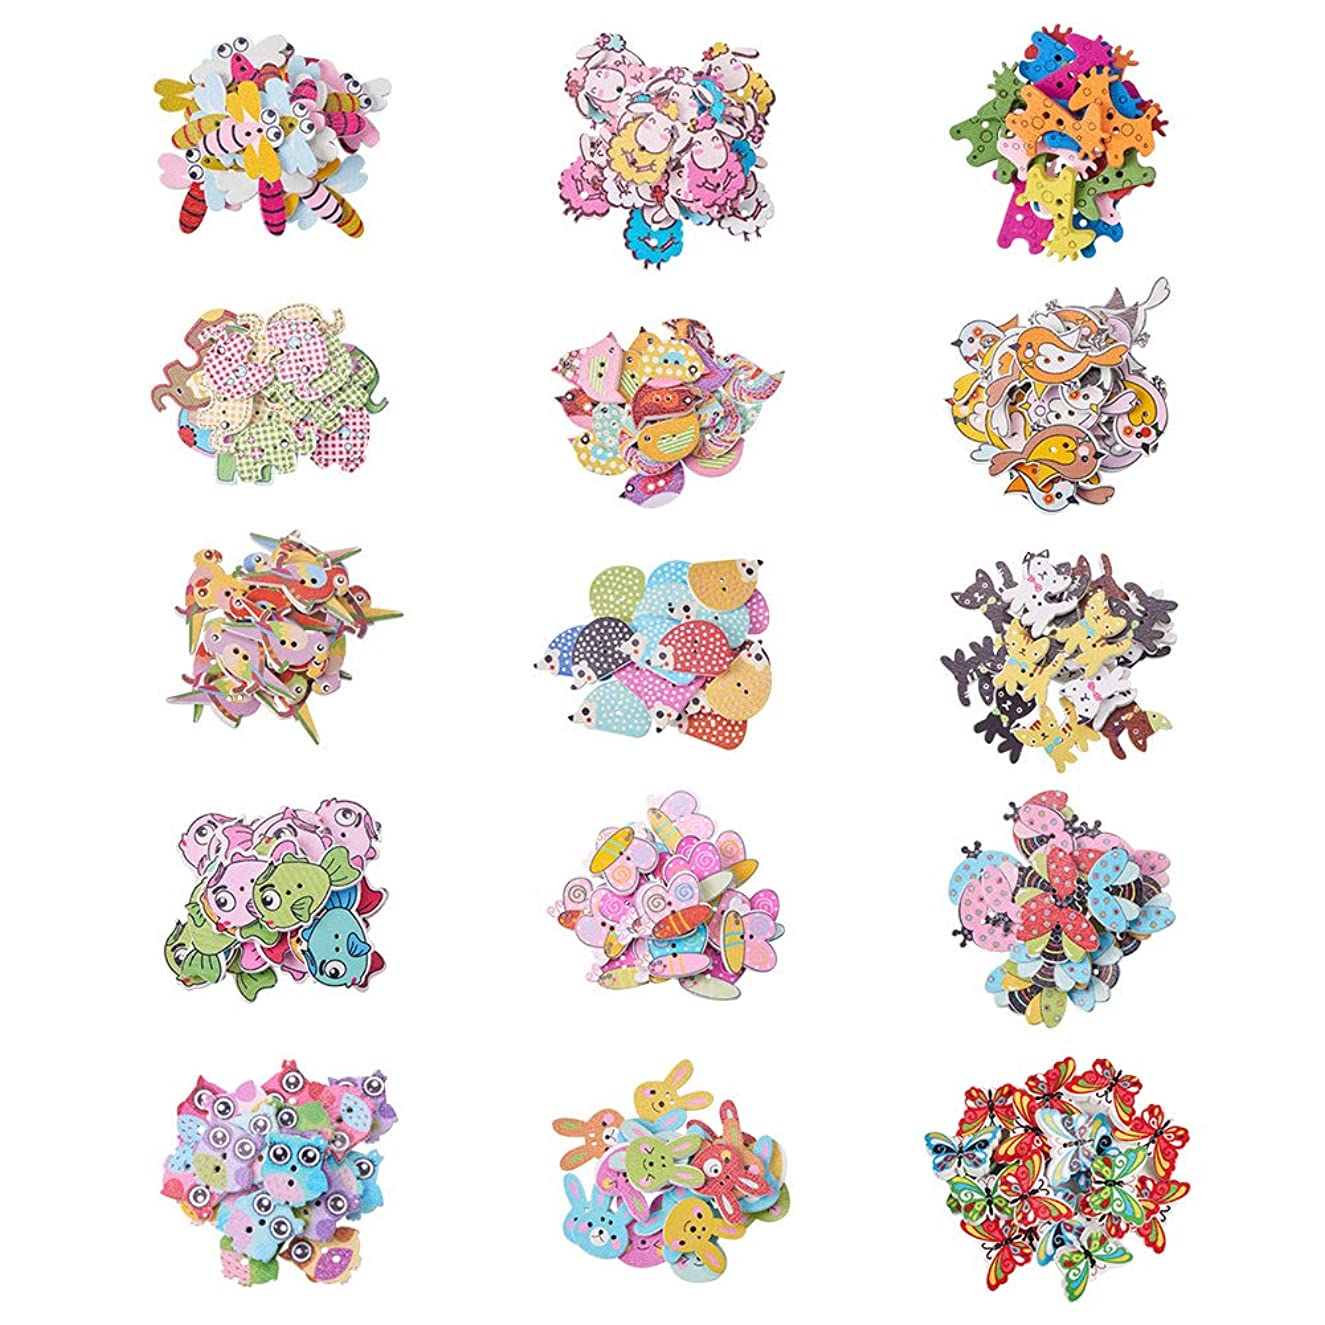 PandaHall Elite 300 Pcs Wooden Cartoon Animal Buttons with 2 Hole 15 Styles for Sewing Scrapbooking and DIY Handmade Craft Assorted Design